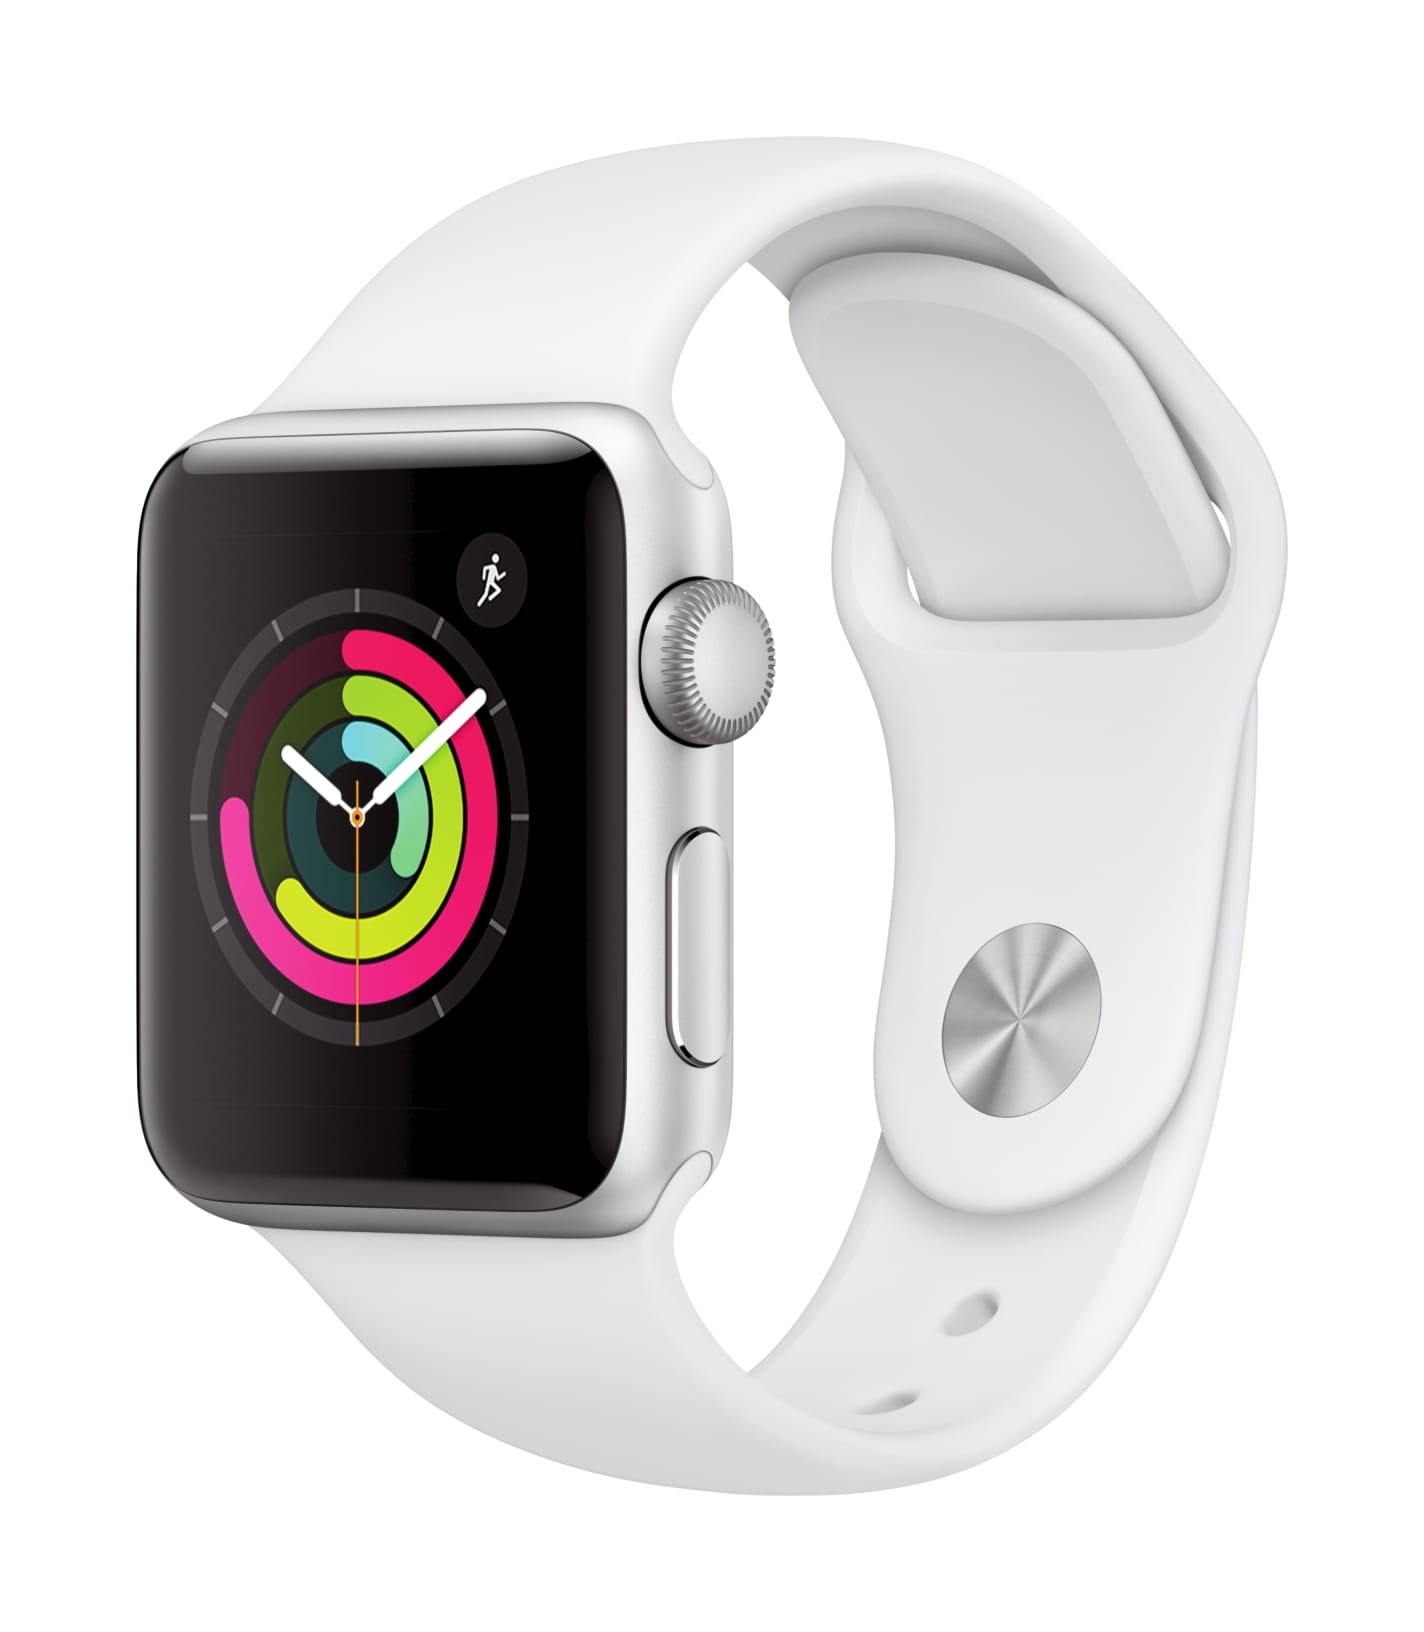 apple watch series 3 with a white sports band